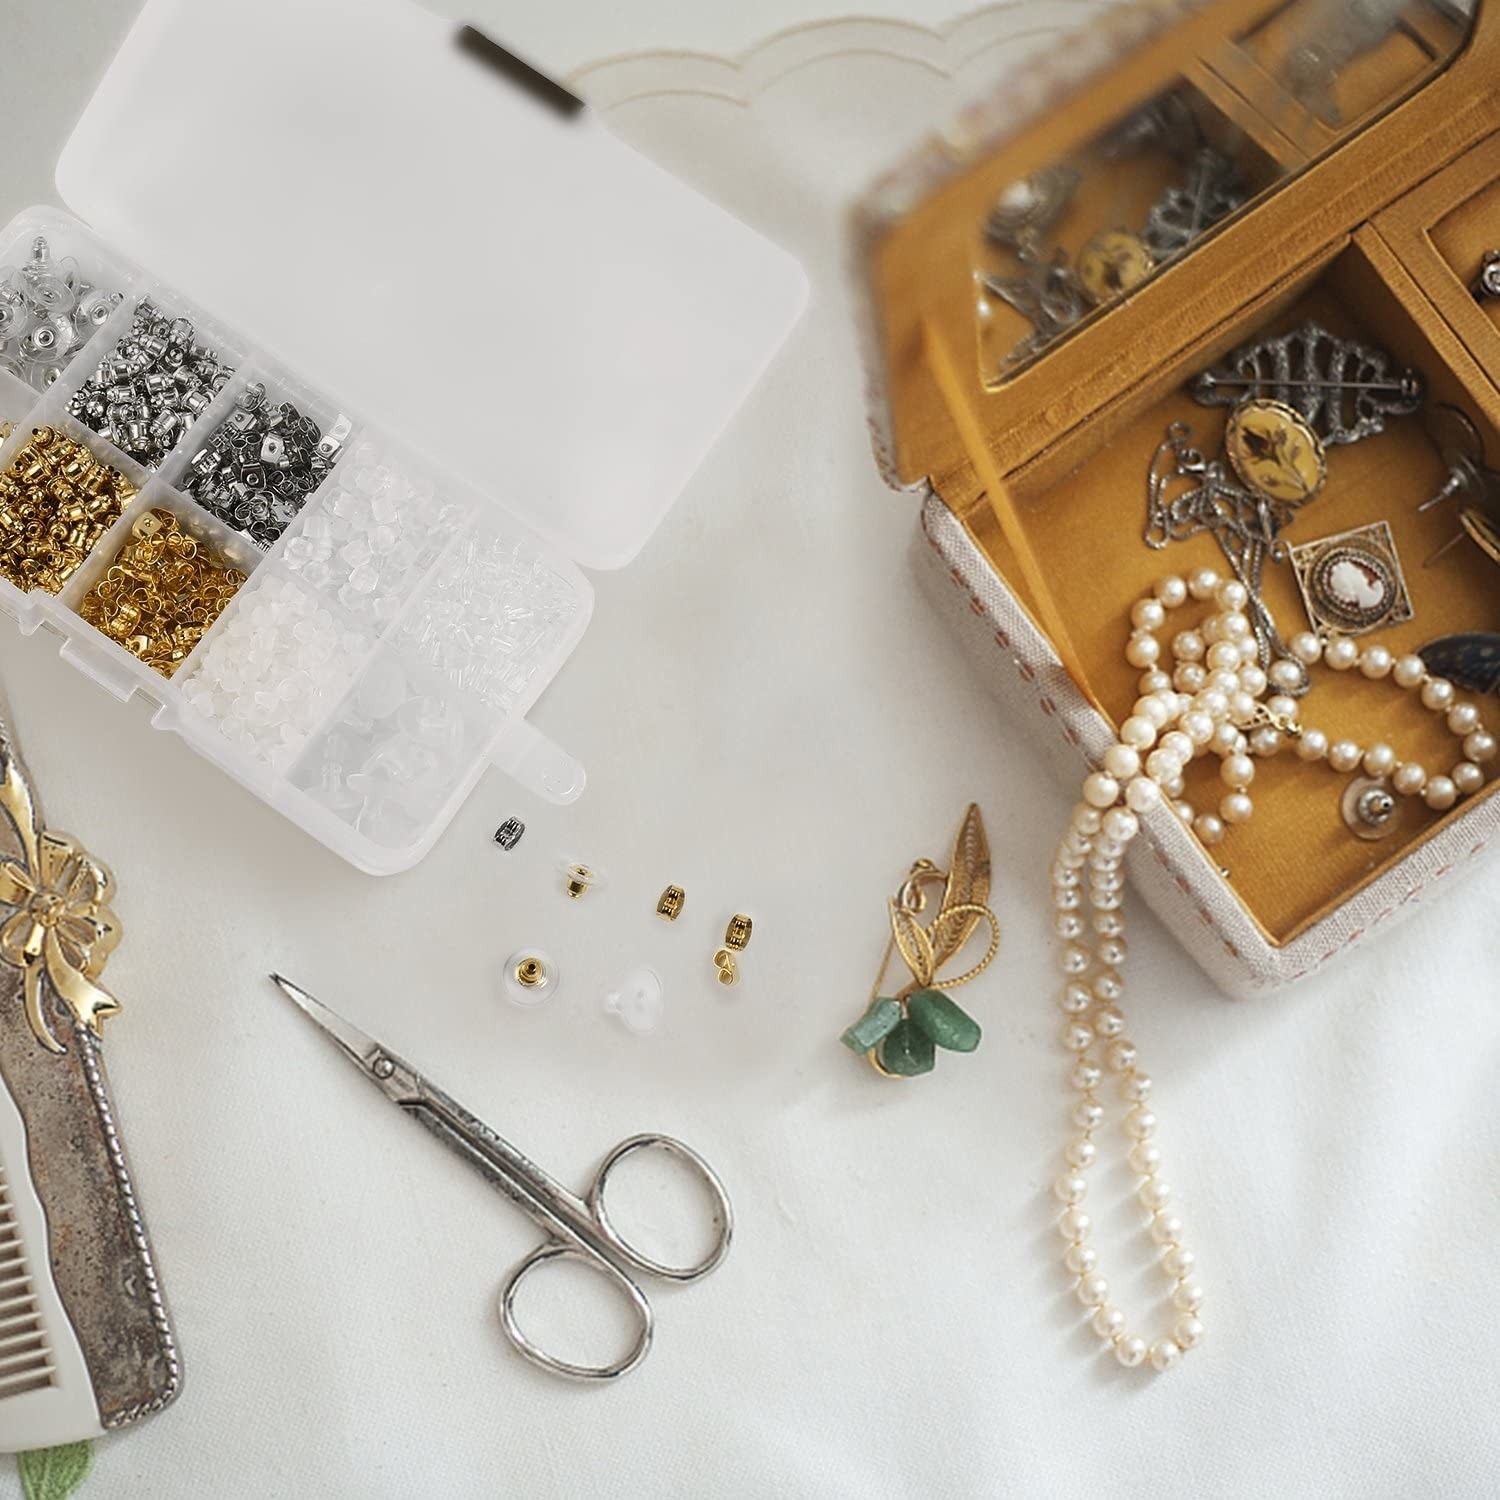 The kit with assorted earring backs